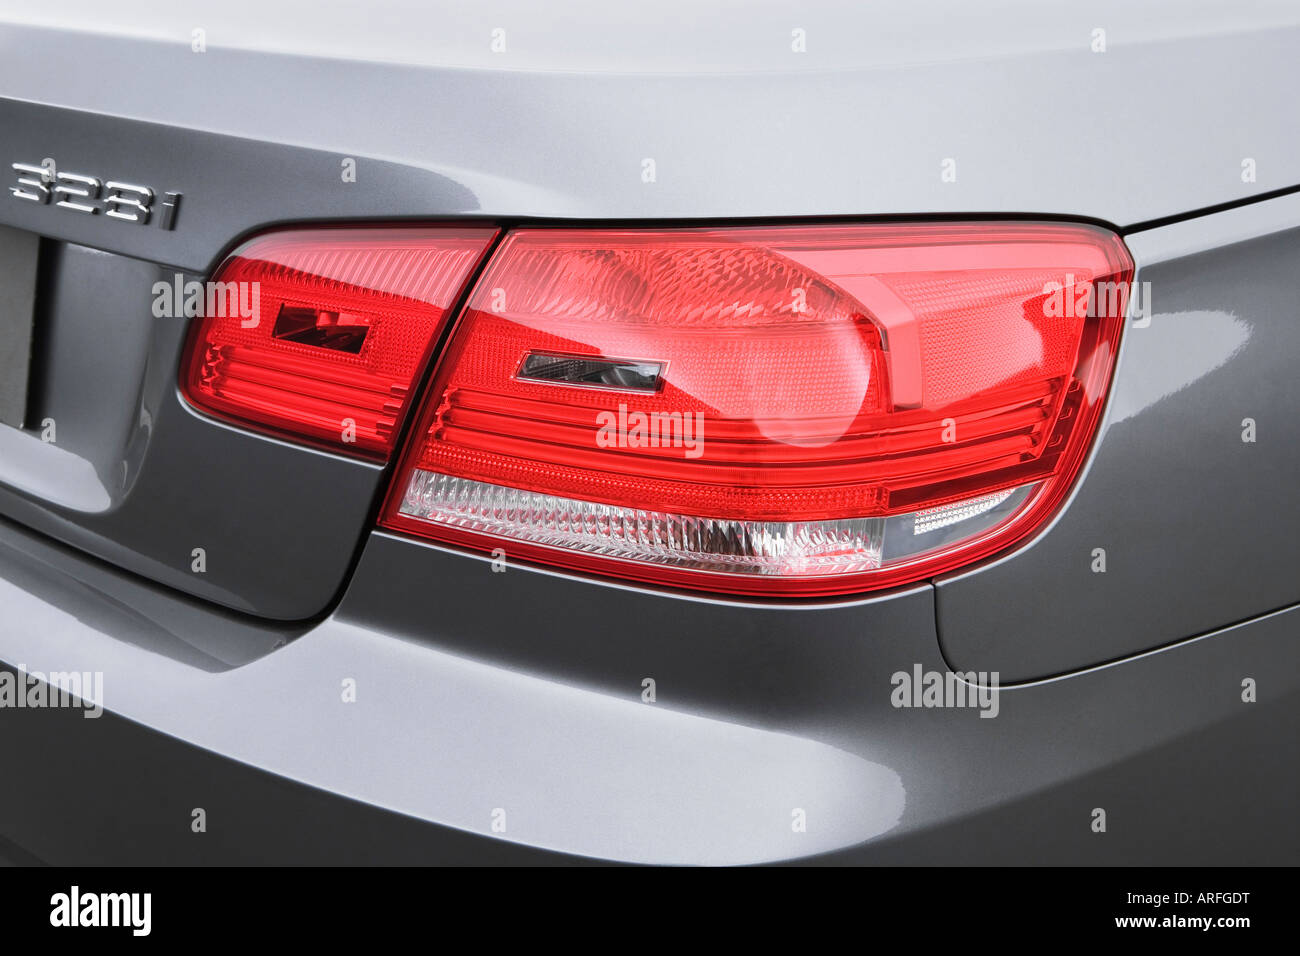 2007 bmw 3 series 328i in gray tail light stock photo. Black Bedroom Furniture Sets. Home Design Ideas